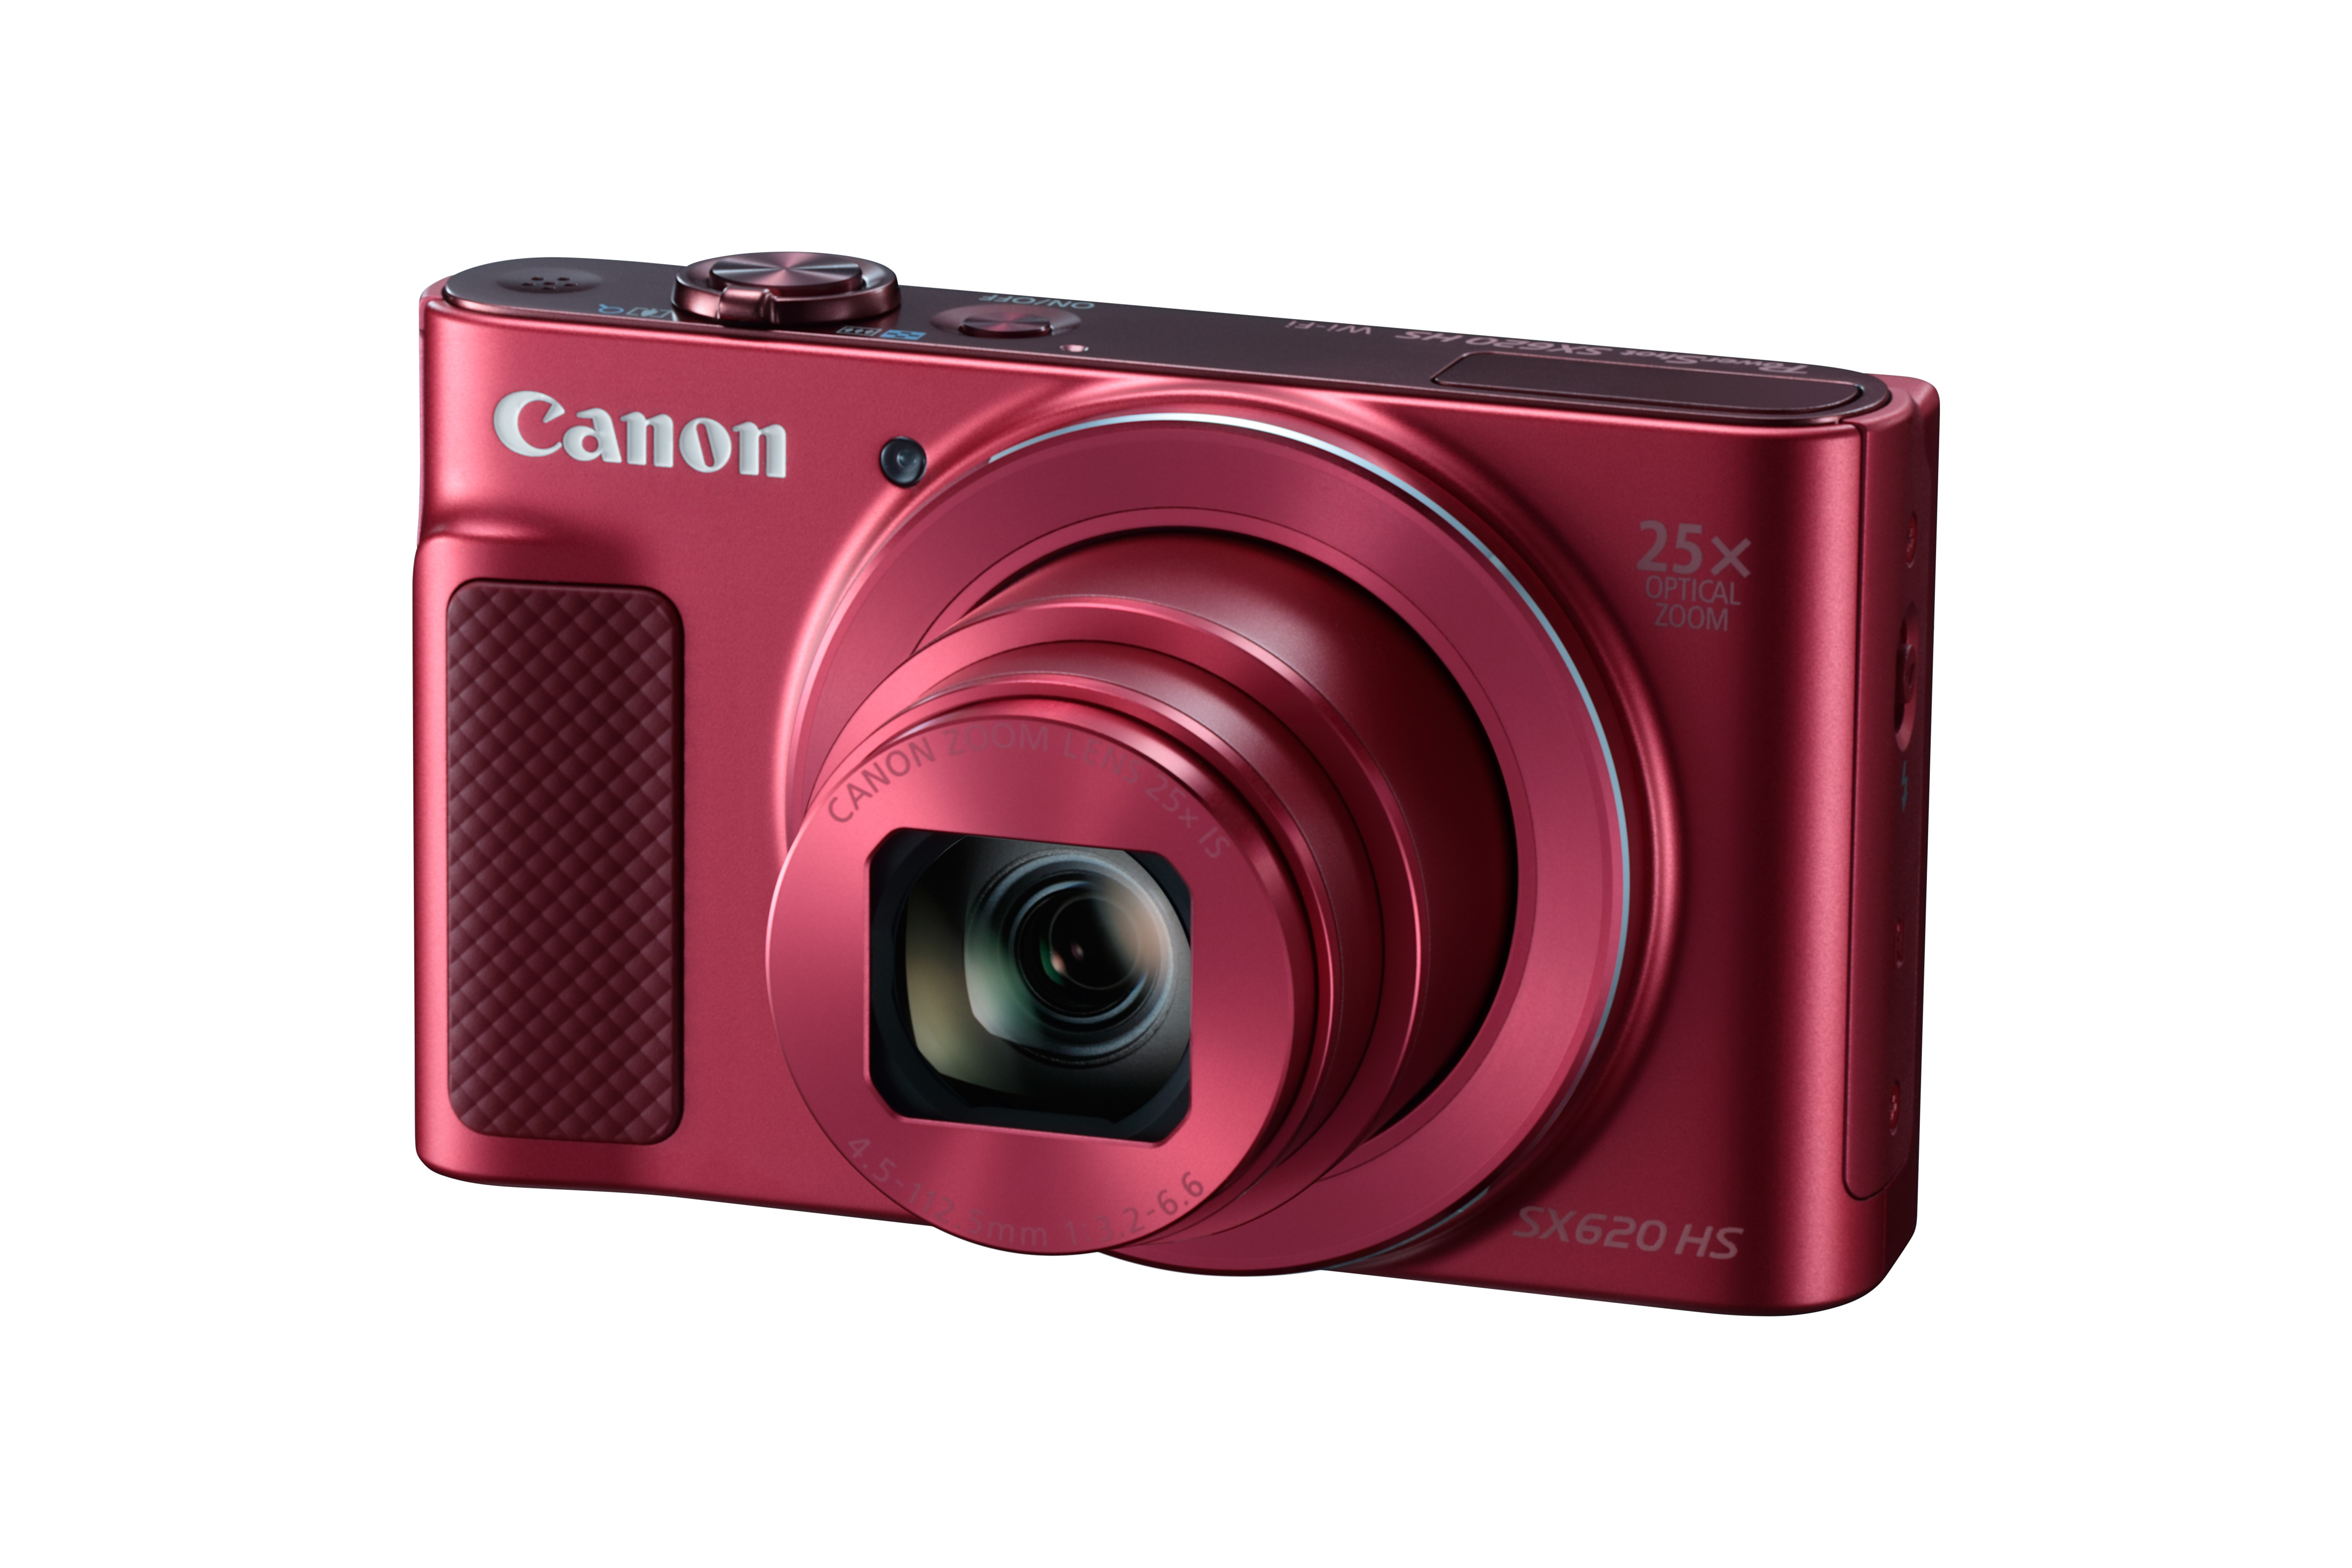 canon launches new powershot sx620 hs with 25x zoom range. Black Bedroom Furniture Sets. Home Design Ideas